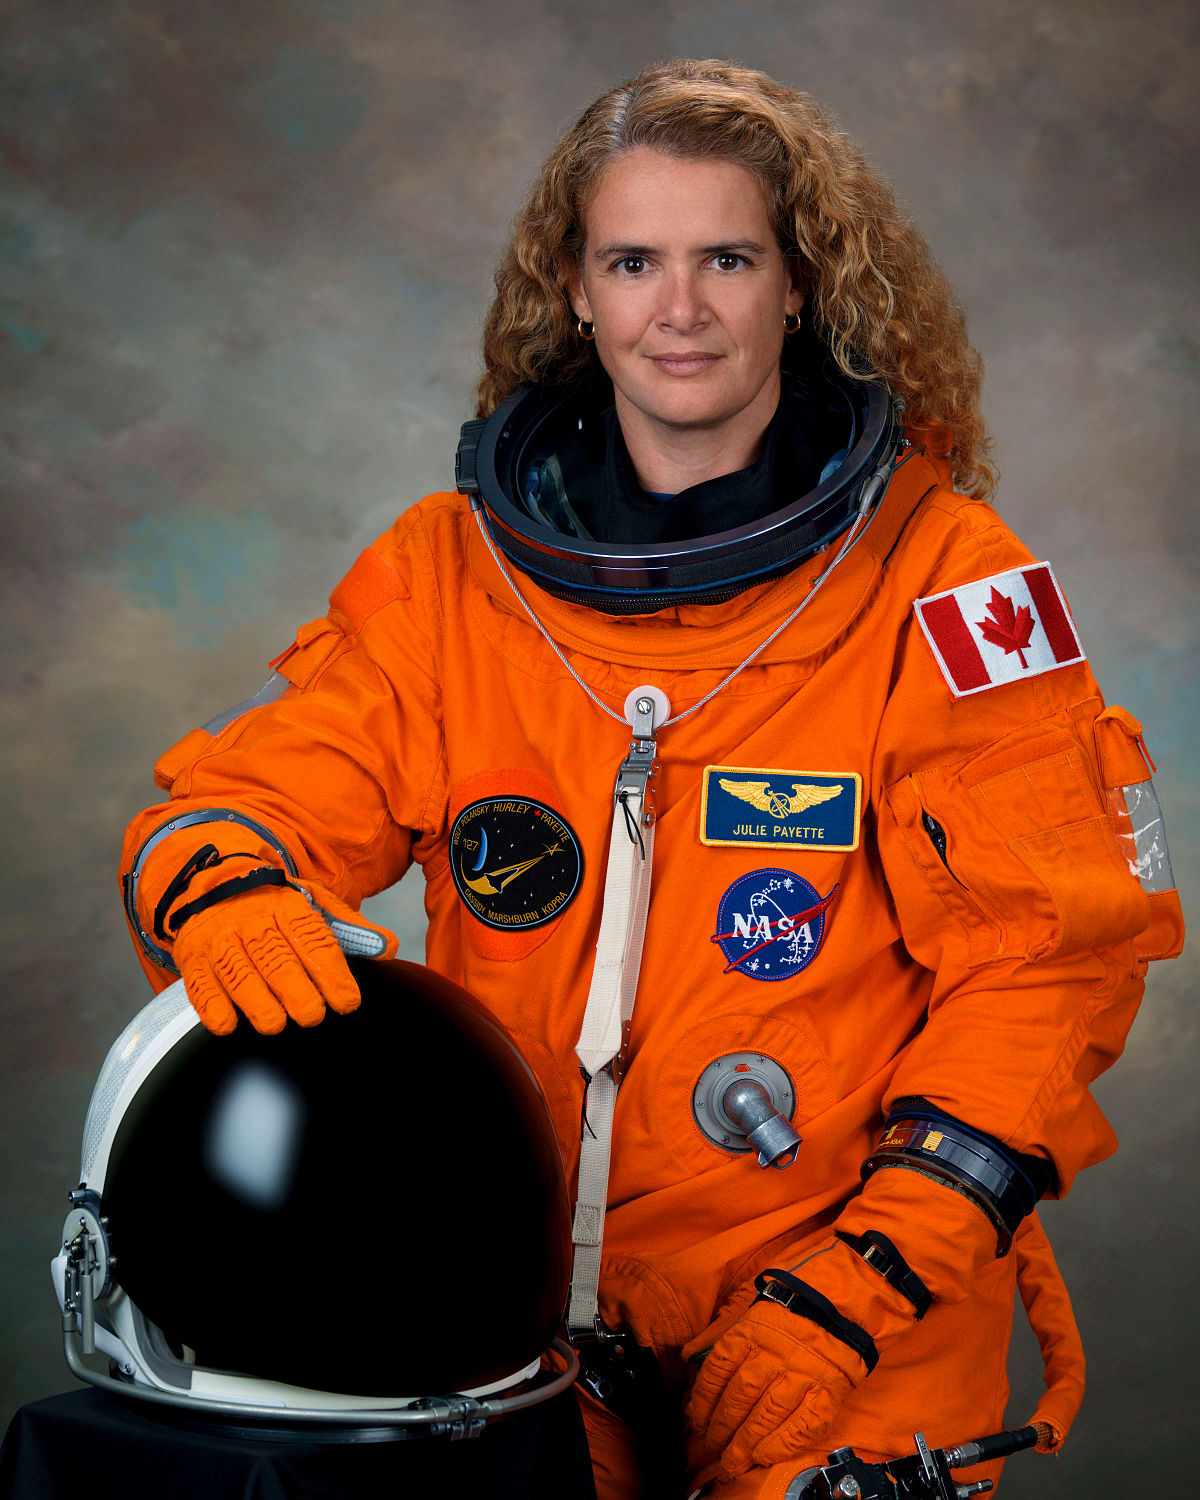 https://upload.wikimedia.org/wikipedia/commons/thumb/a/ae/Julie_Payette_CSA.jpg/1200px-Julie_Payette_CSA.jpg